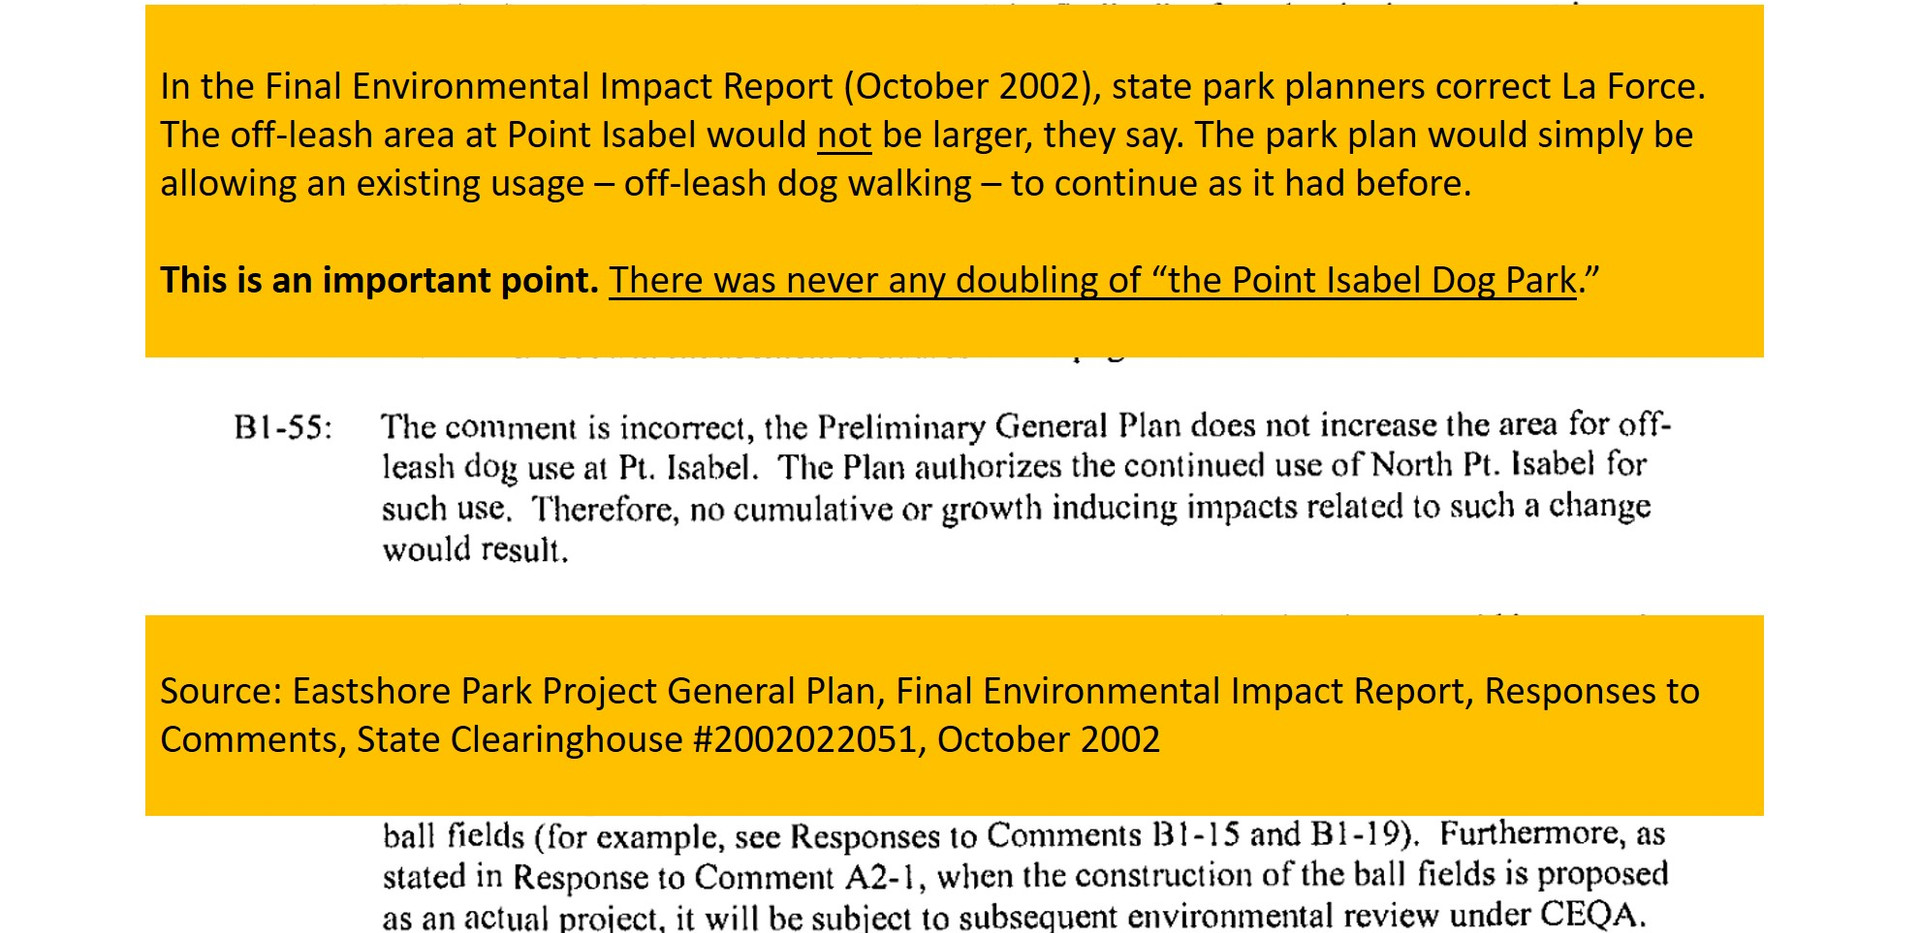 The park planning team issued a sharp correction